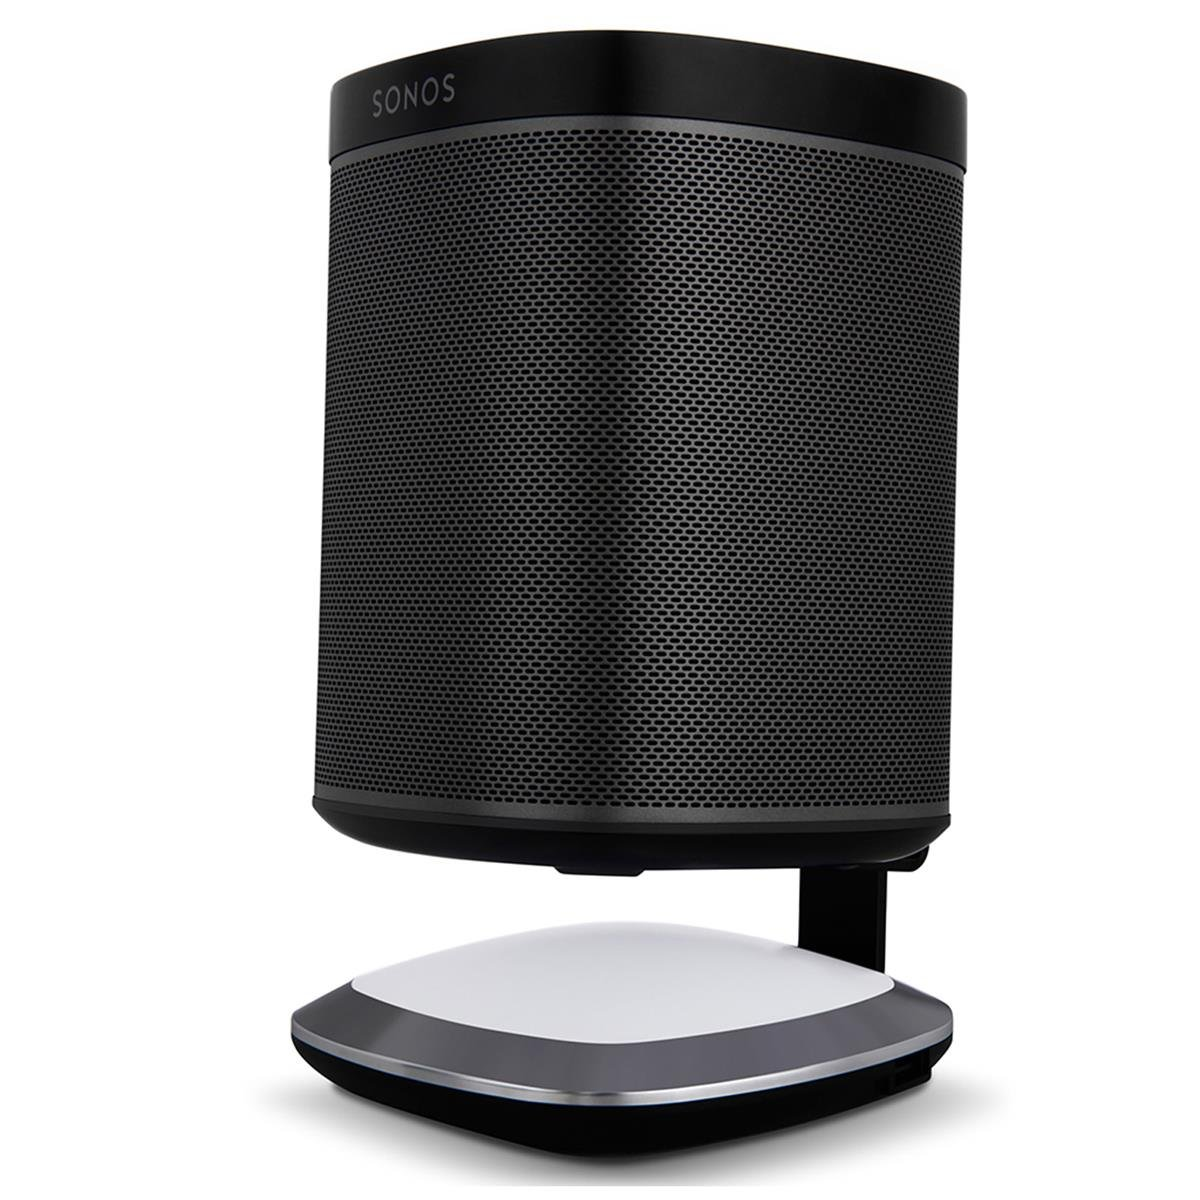 Sonos Play:1 All-In-One Wireless Music Streaming Speakers with Flexson Illuminated Charging Stands - Pair (Black) by Sonos (Image #8)